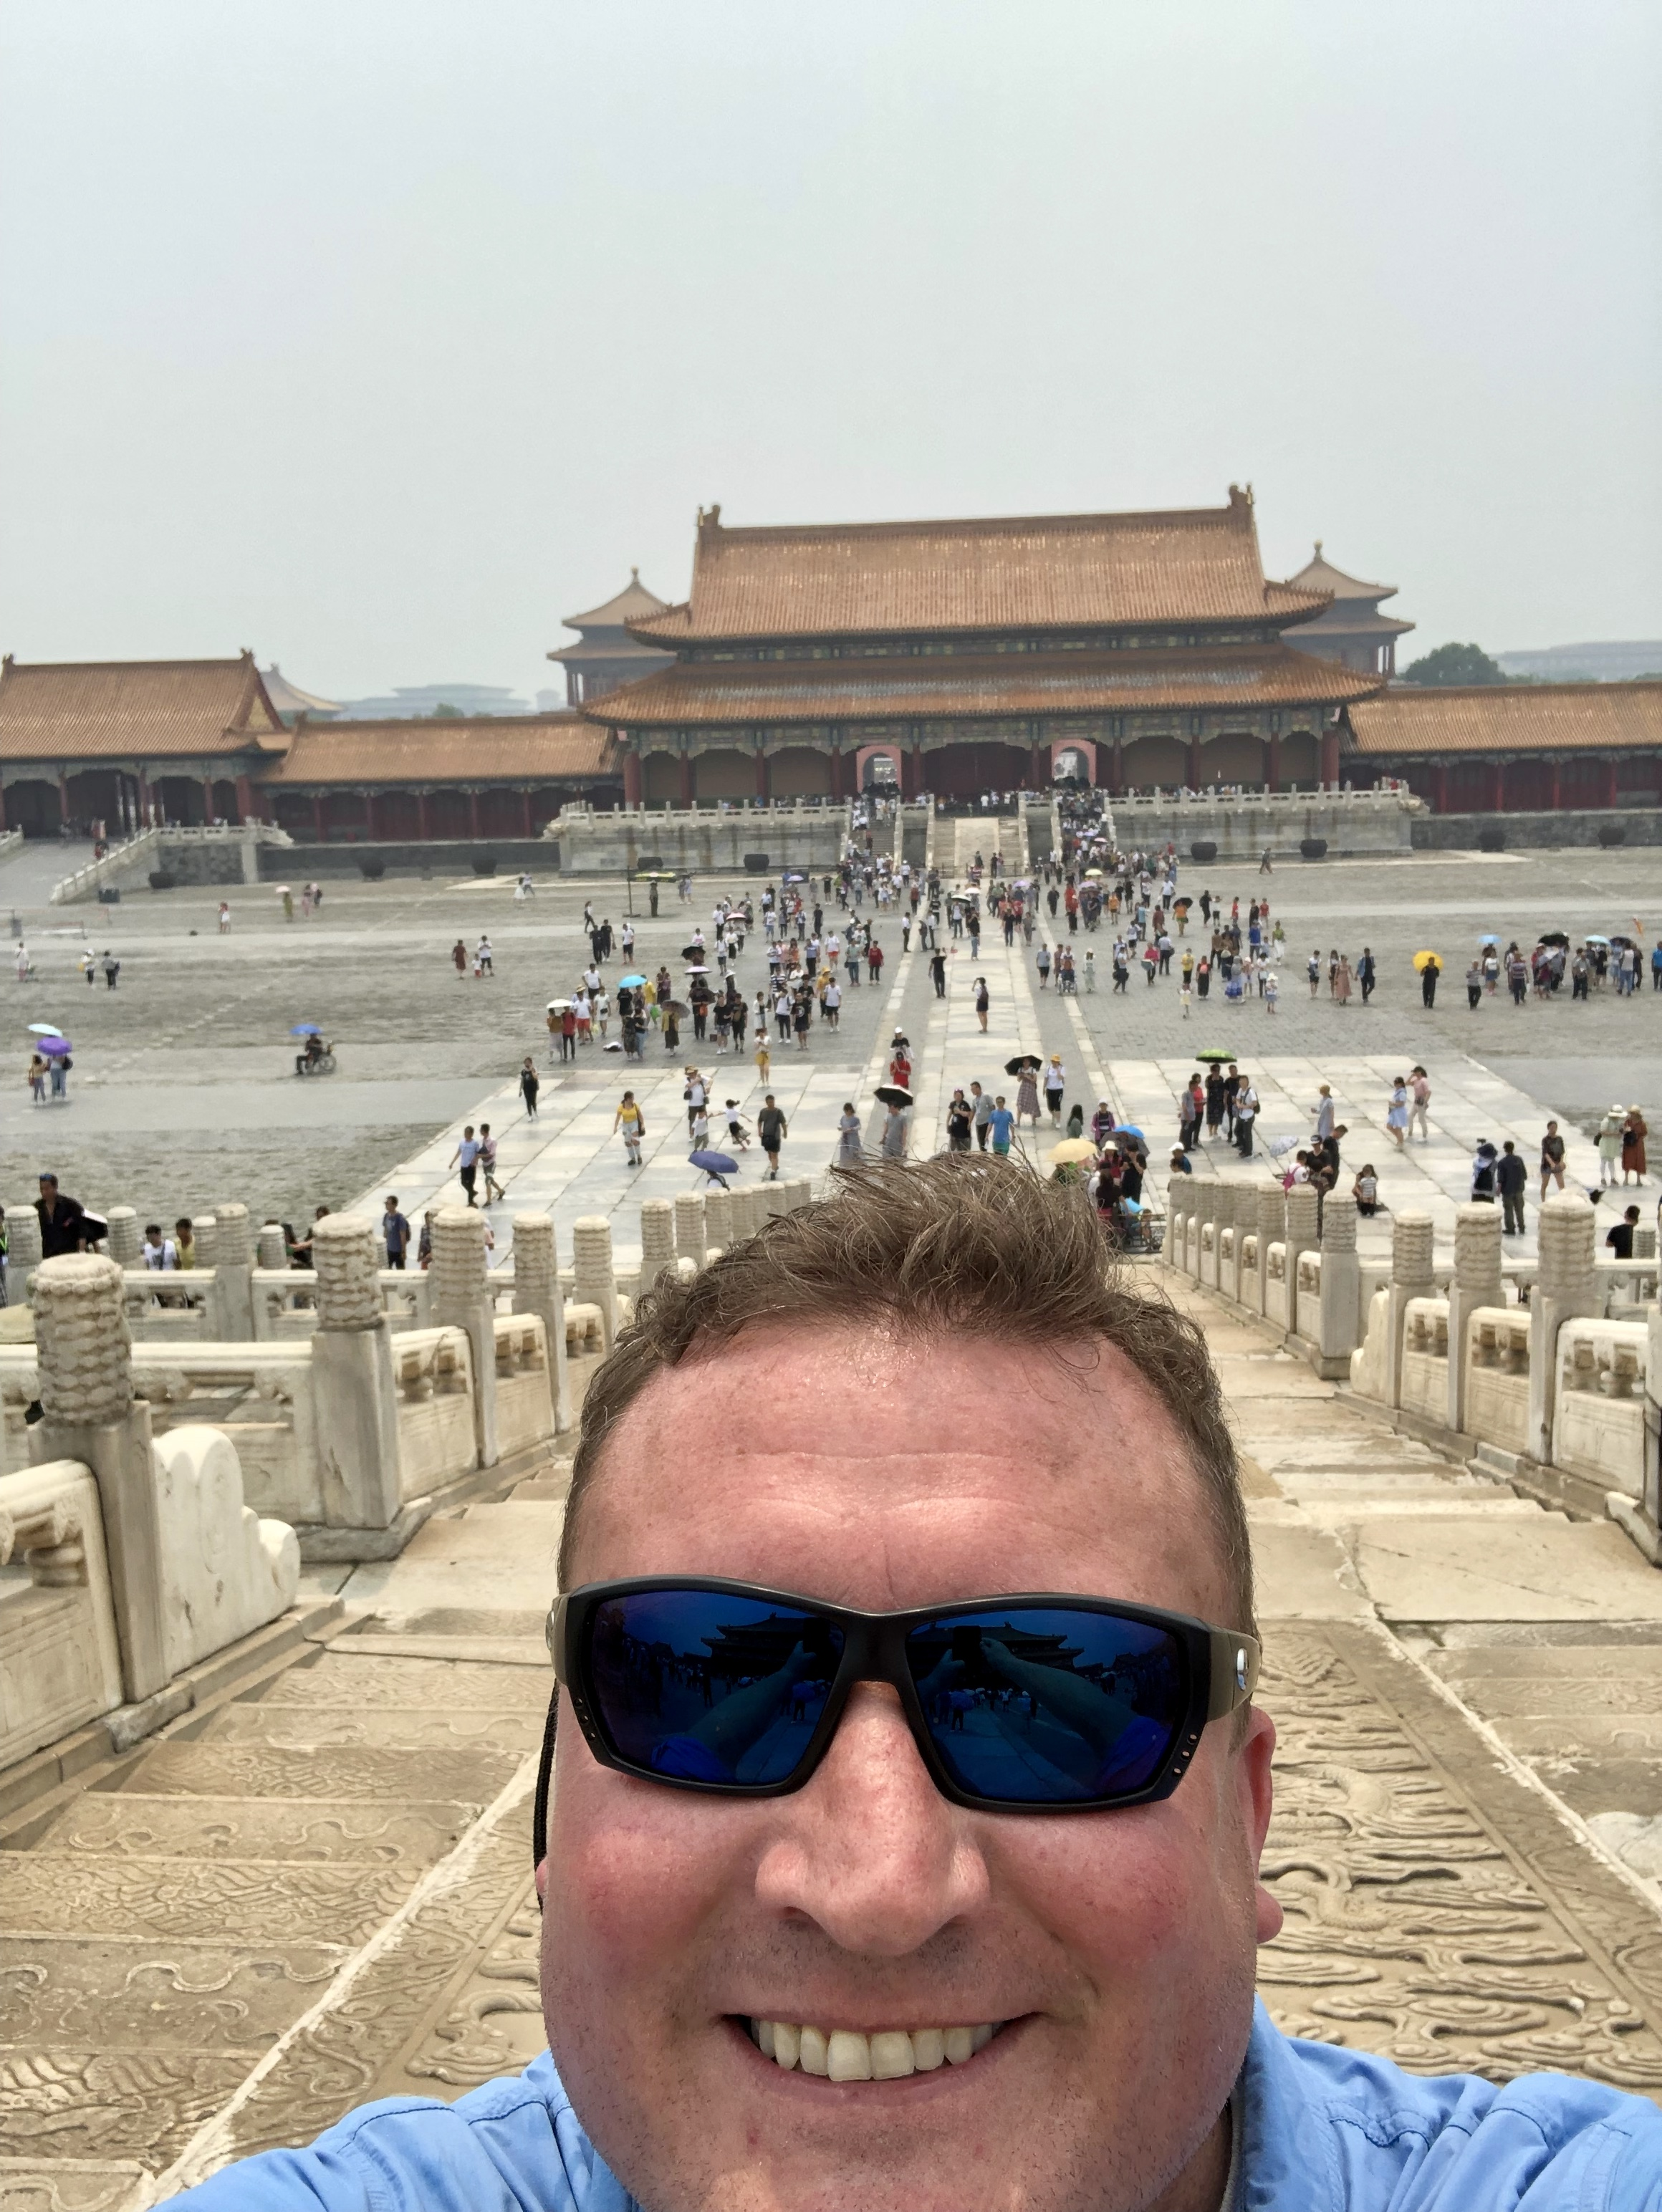 Christian Freitag is the Center's President and Executive Director Since January 2019. He recently made a trip to China to participate in the 2019 Public Affairs Governance Workshop.